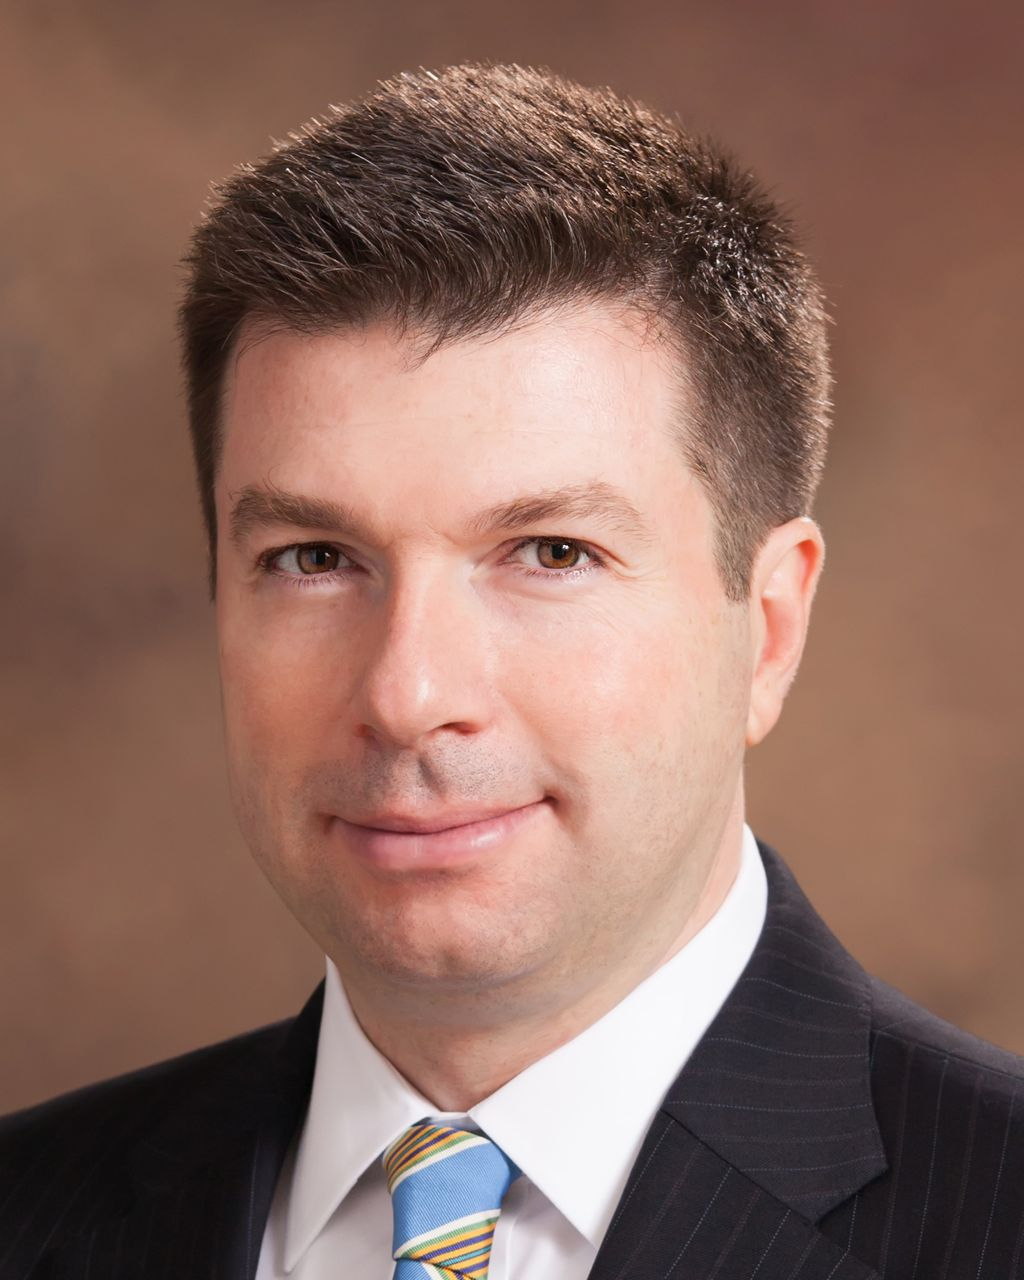 Patrick Cote, financial advisor Plainville MA